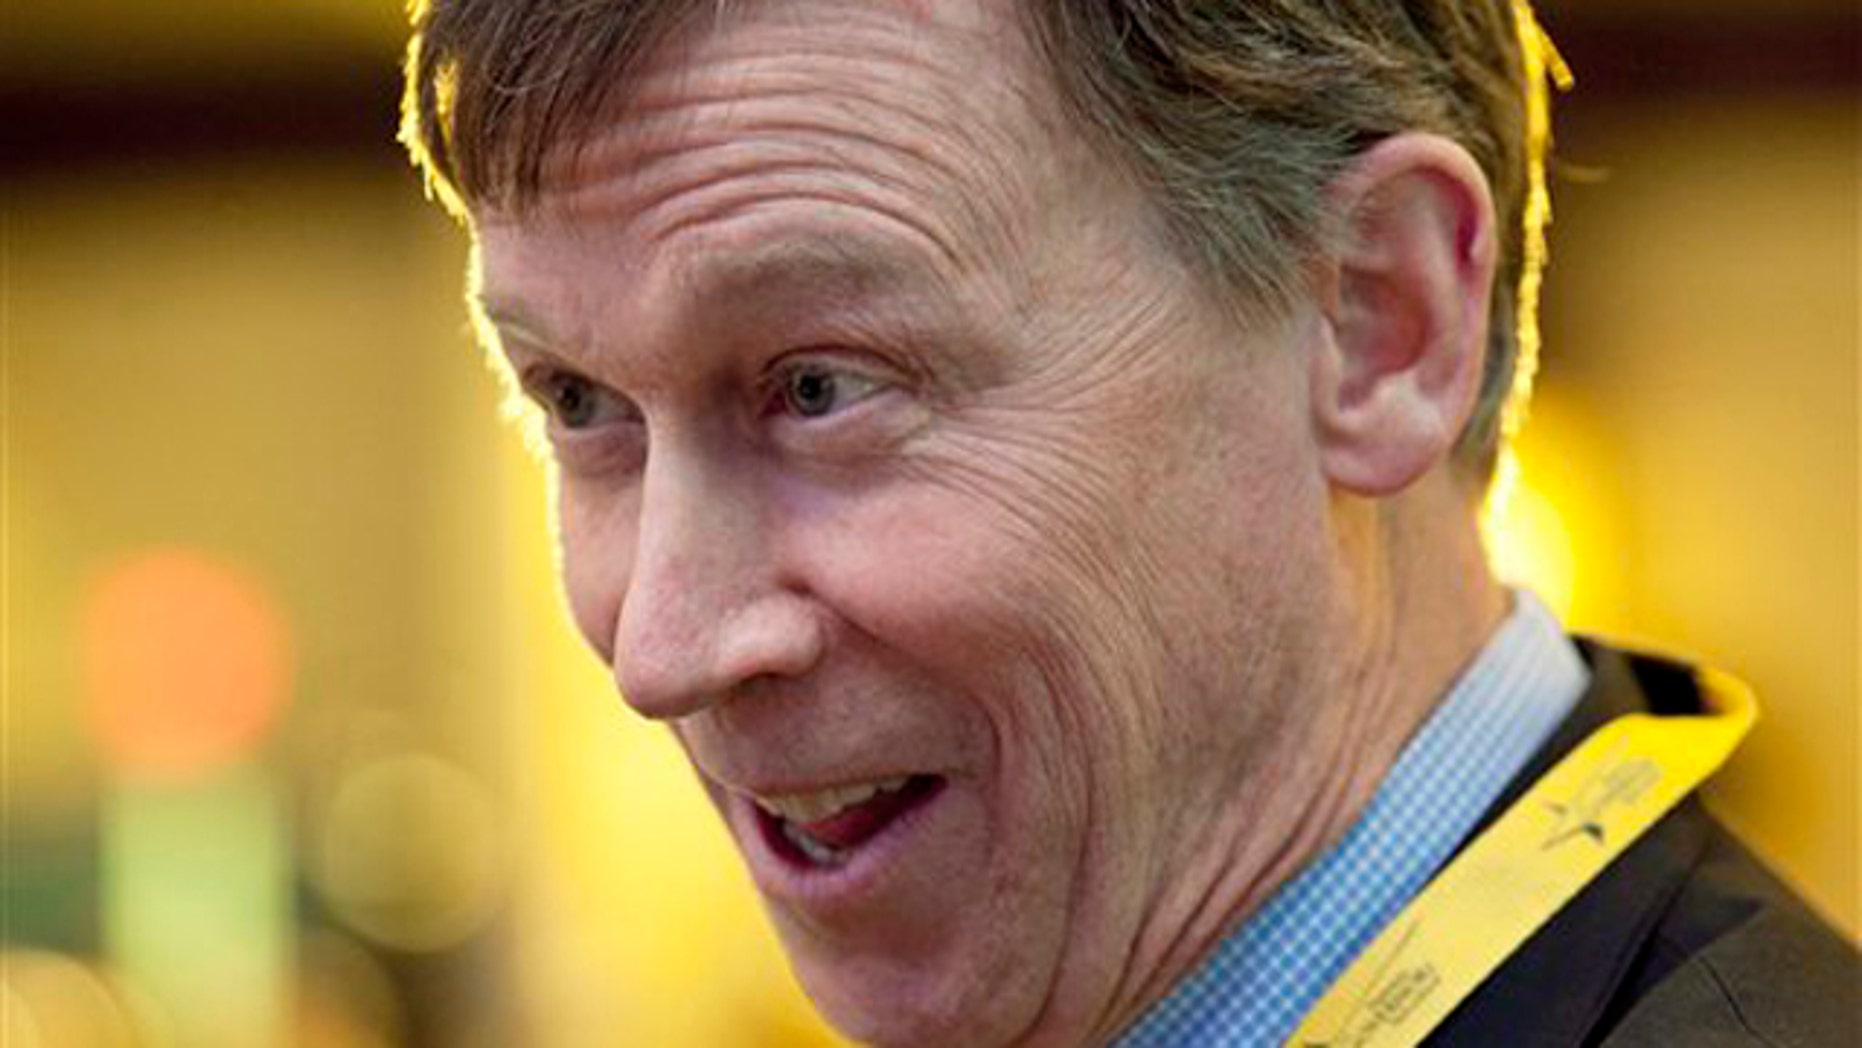 FILE:Feb. 25, 2012: Colorado Gov. John Hickenlooper, D, is shown at the National Governors Association winter meeting in Washington.